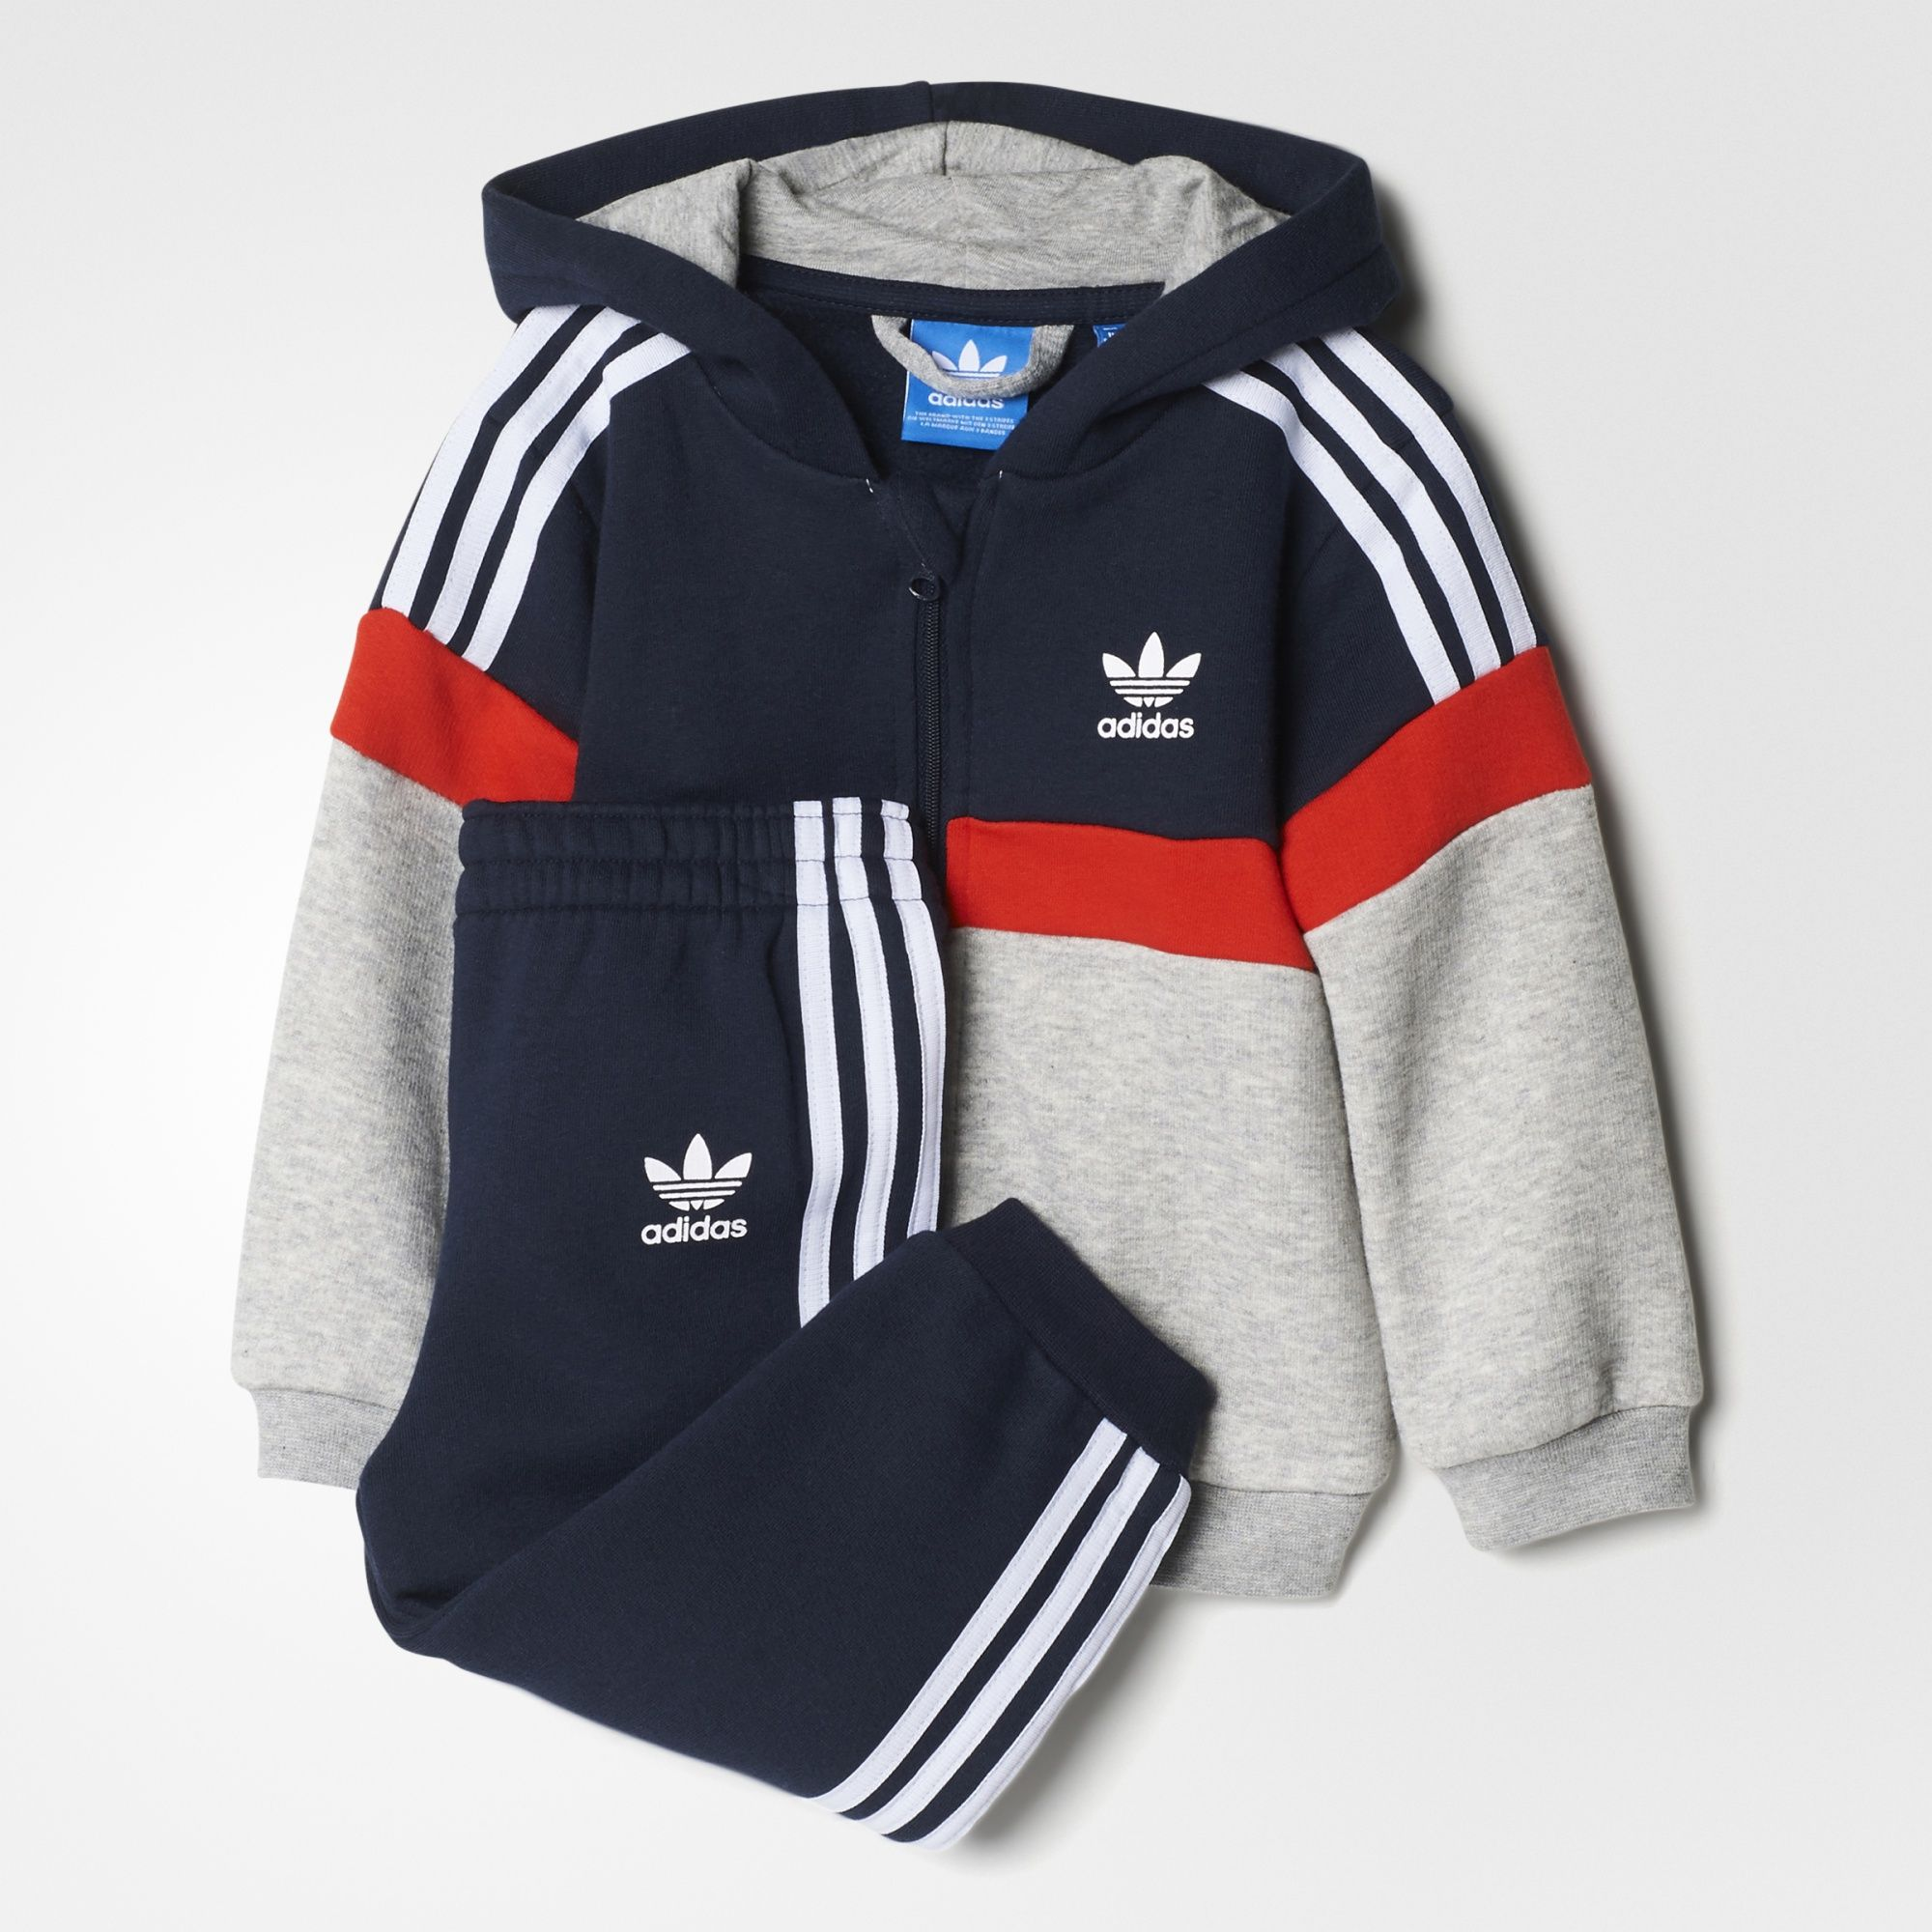 youth adidas clothes